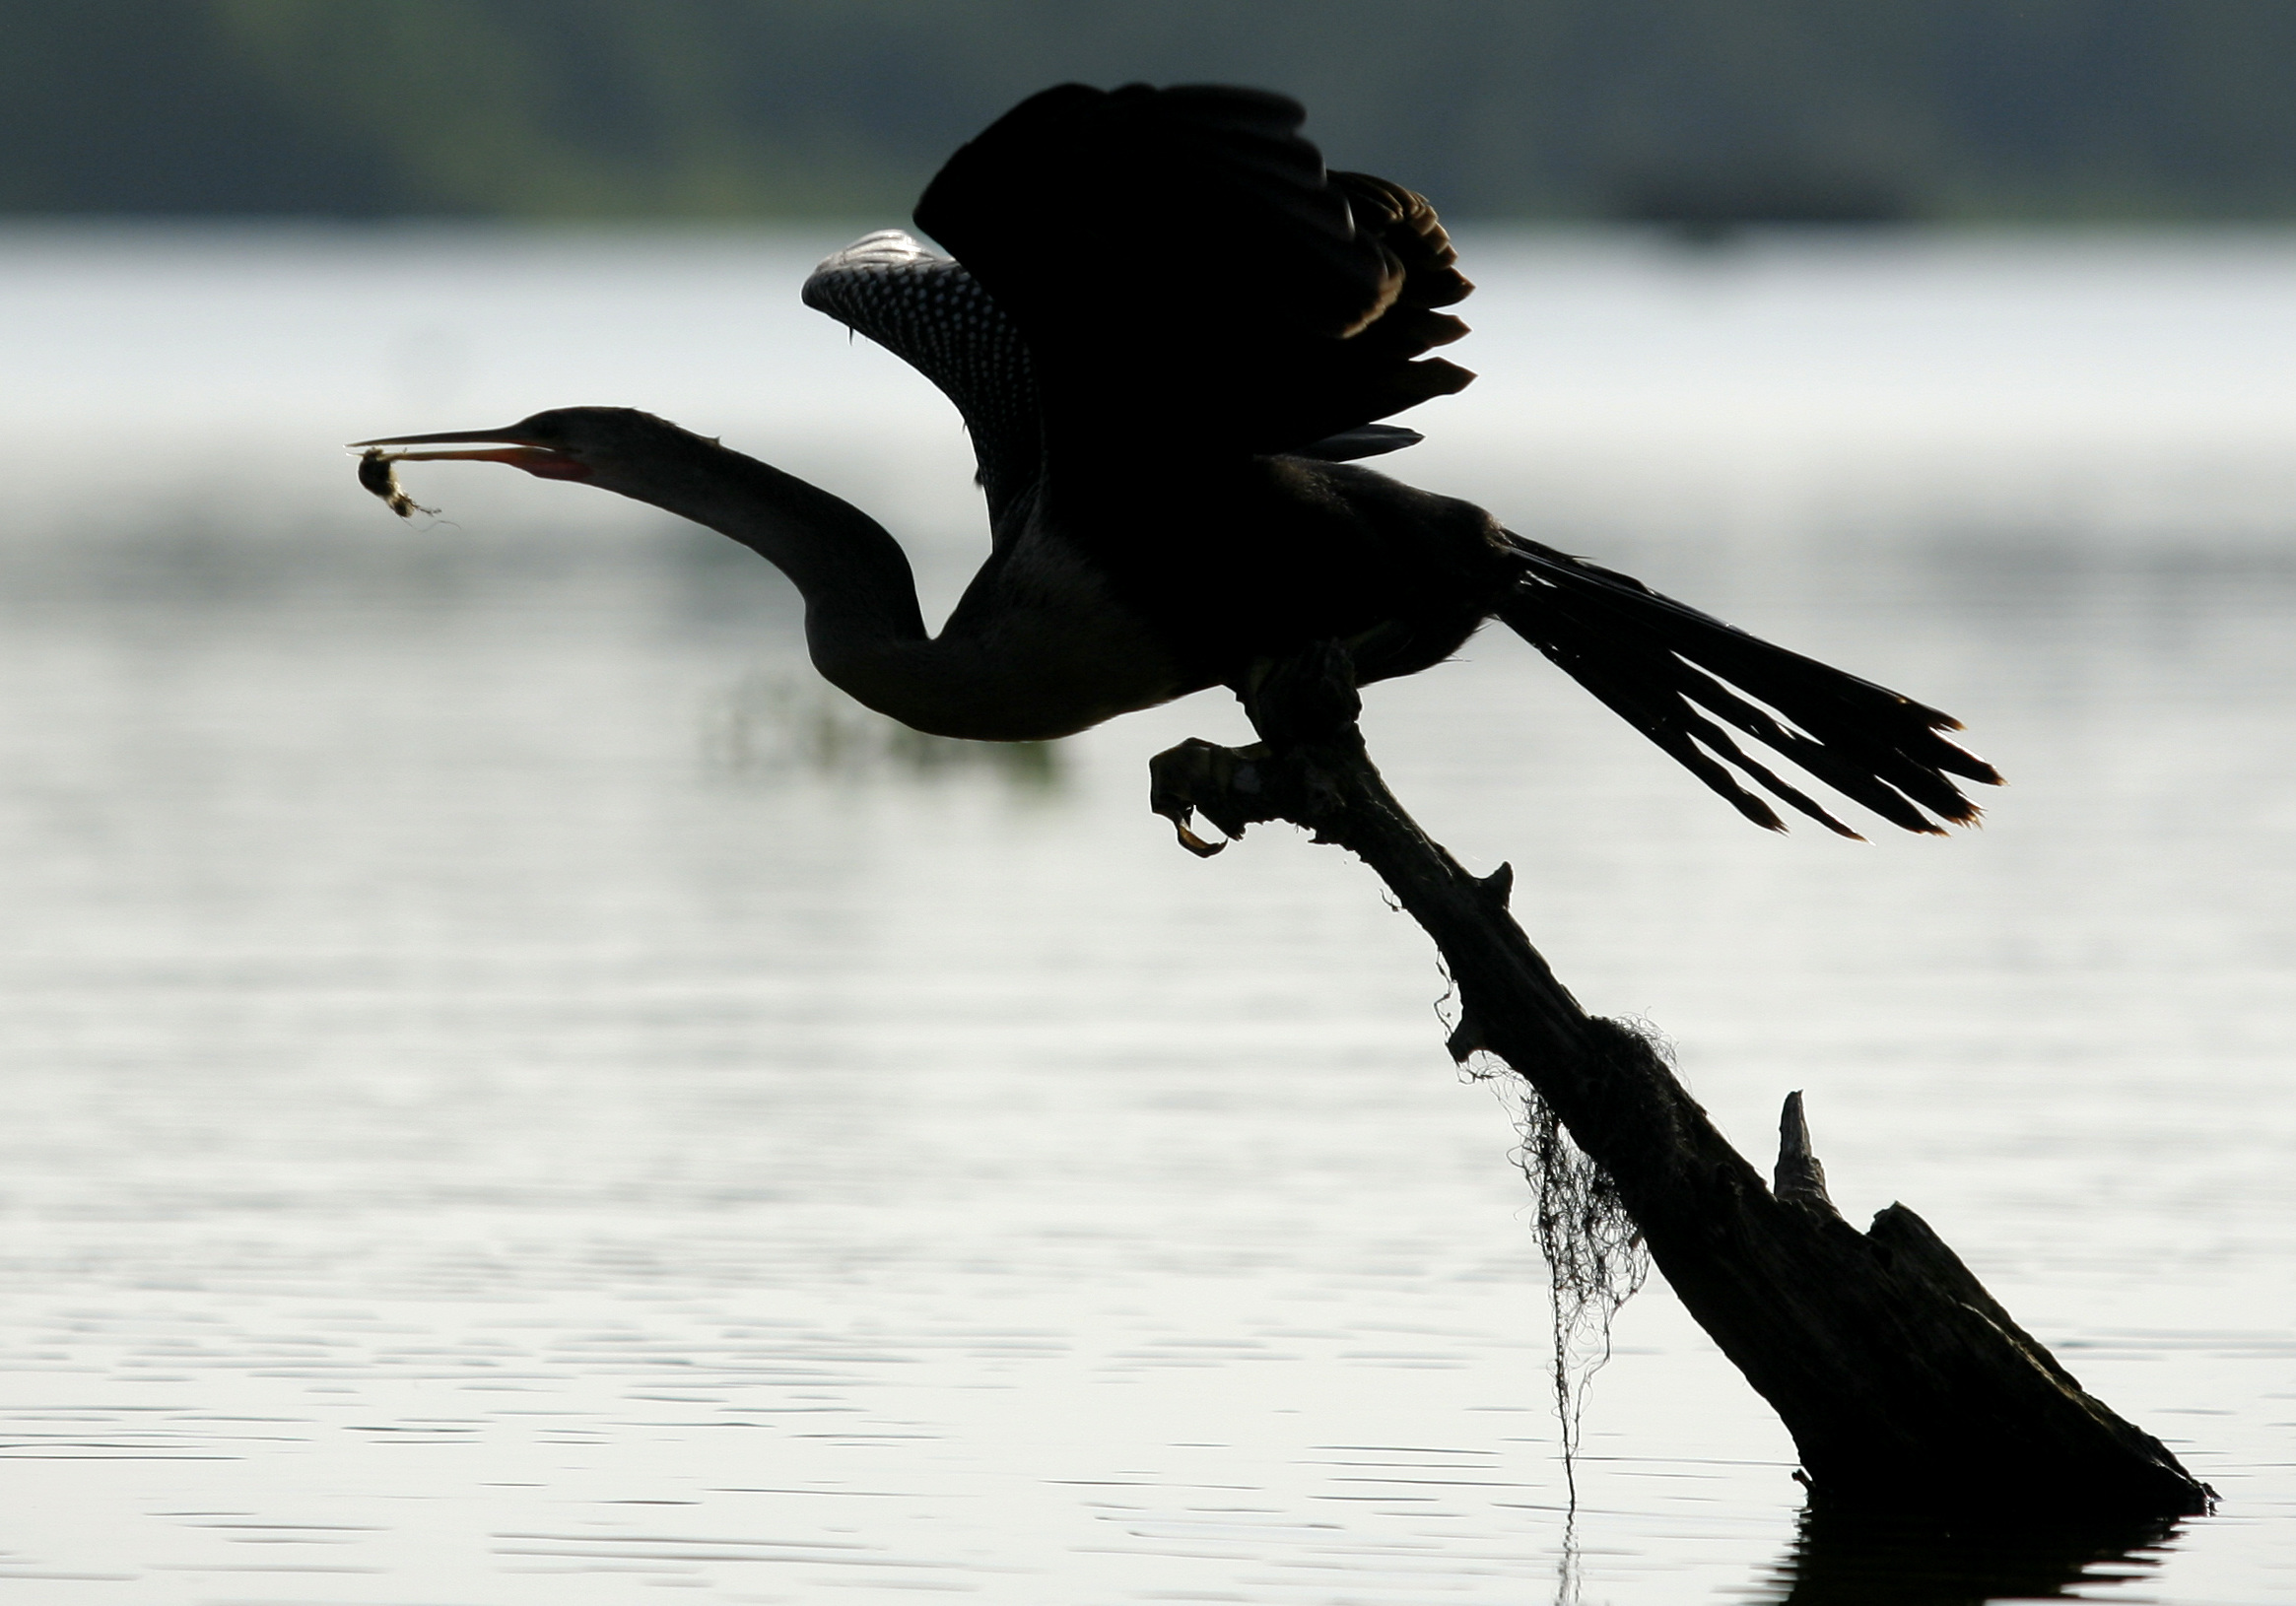 An anhinga takes flight with a fish at Lake Martin on Saturday, August 16, 2010, near Breaux Bridge, La. (Kevin Martin)